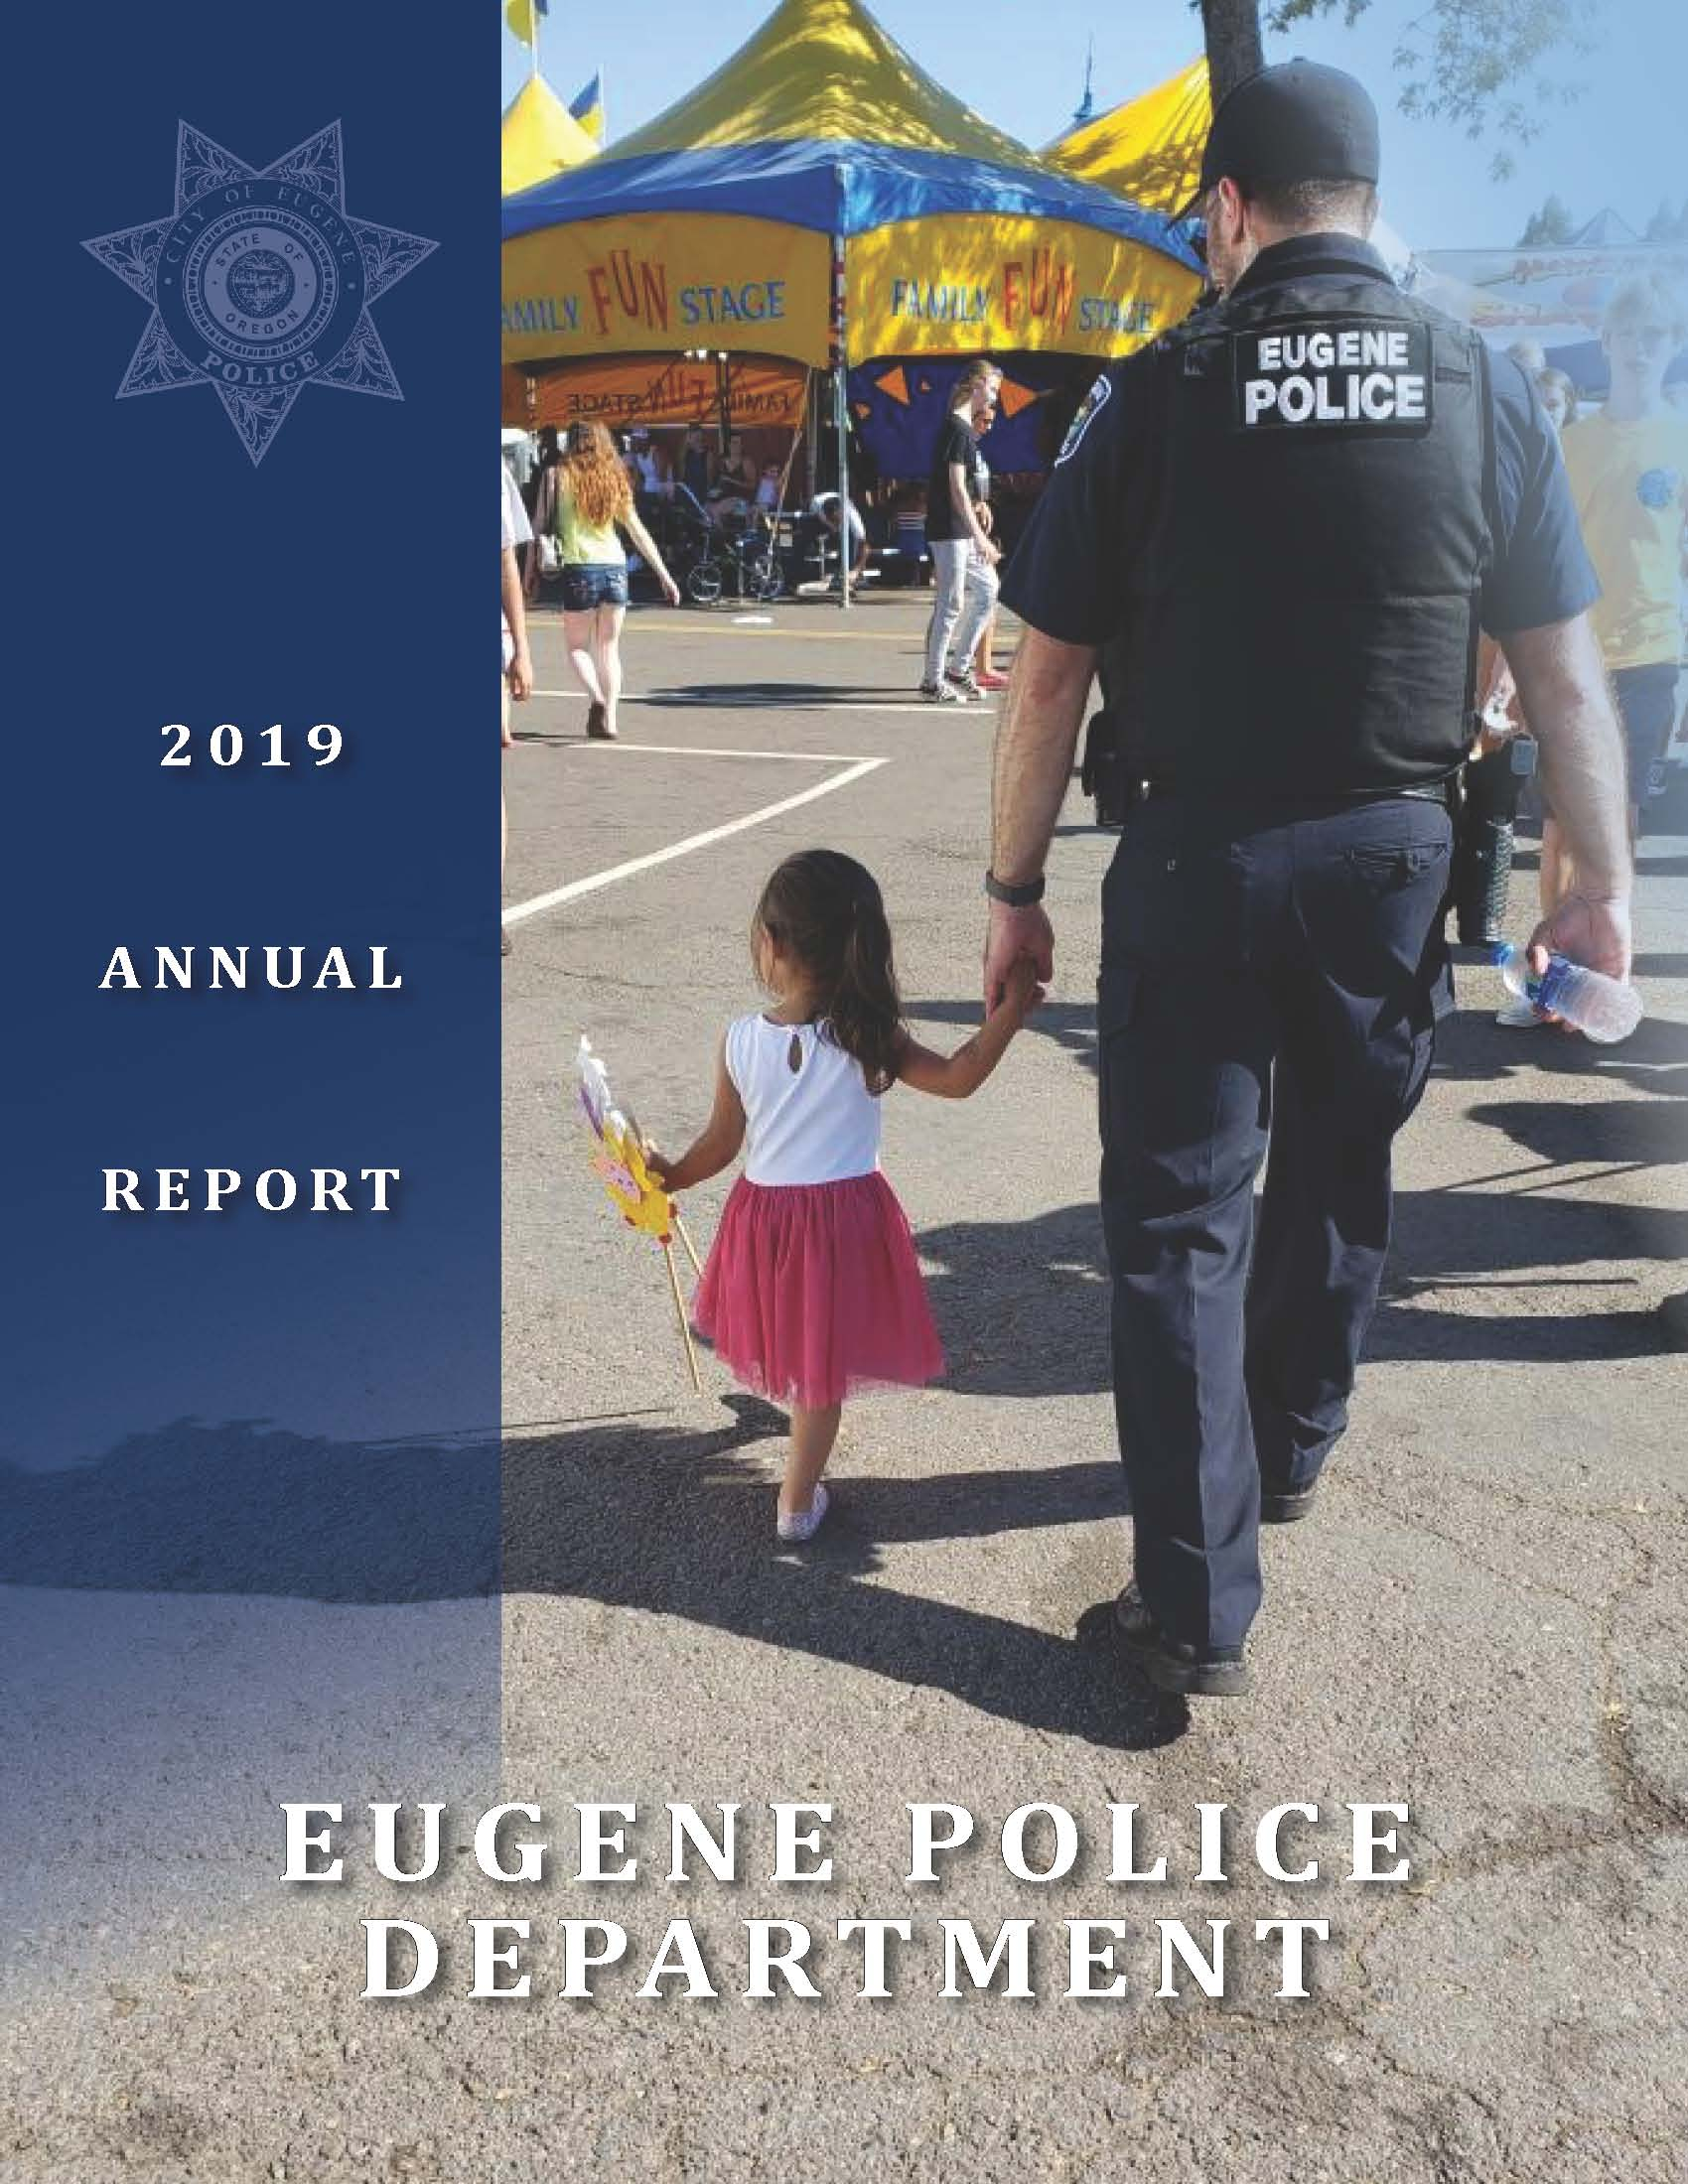 2019 Annual Report EPD